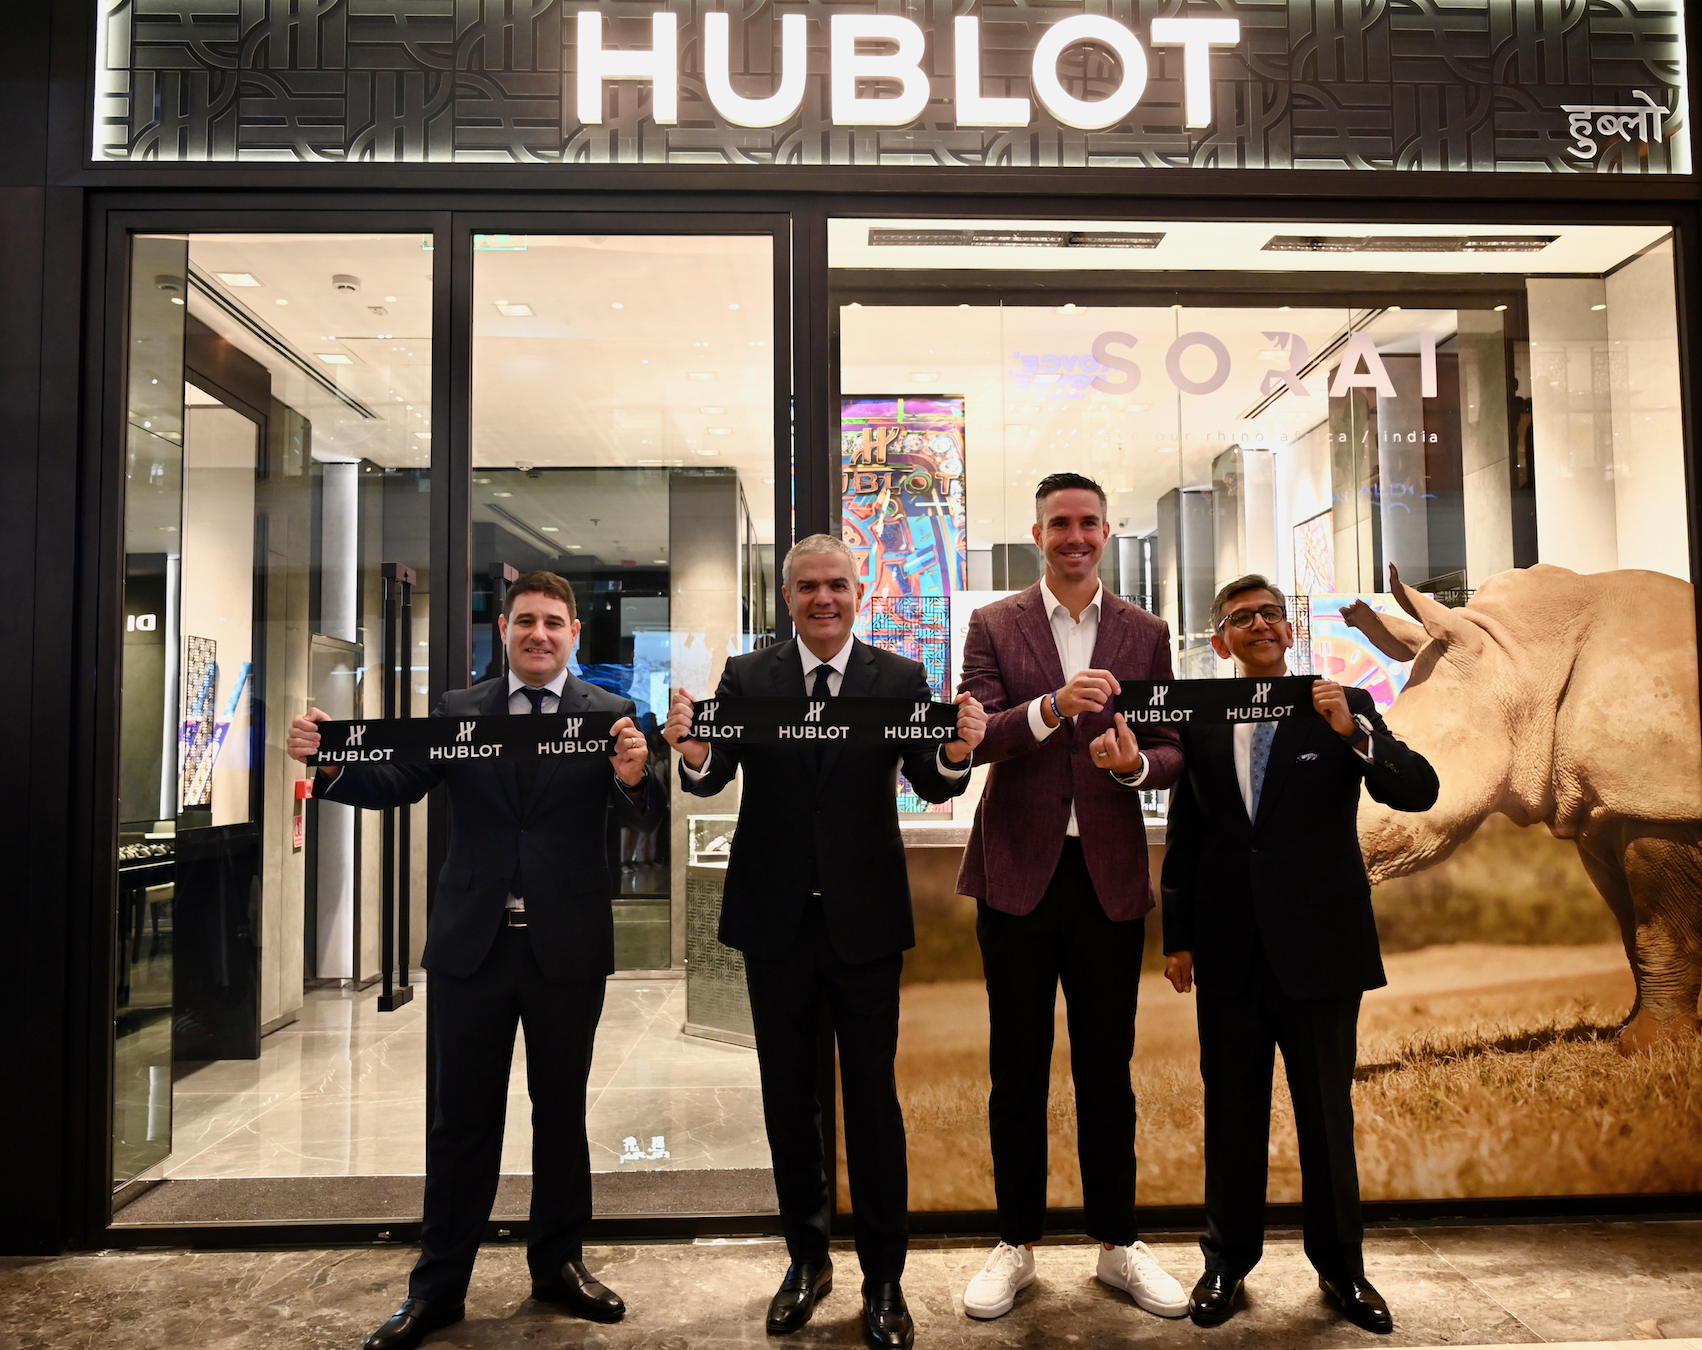 Boutique de Hublot en la India